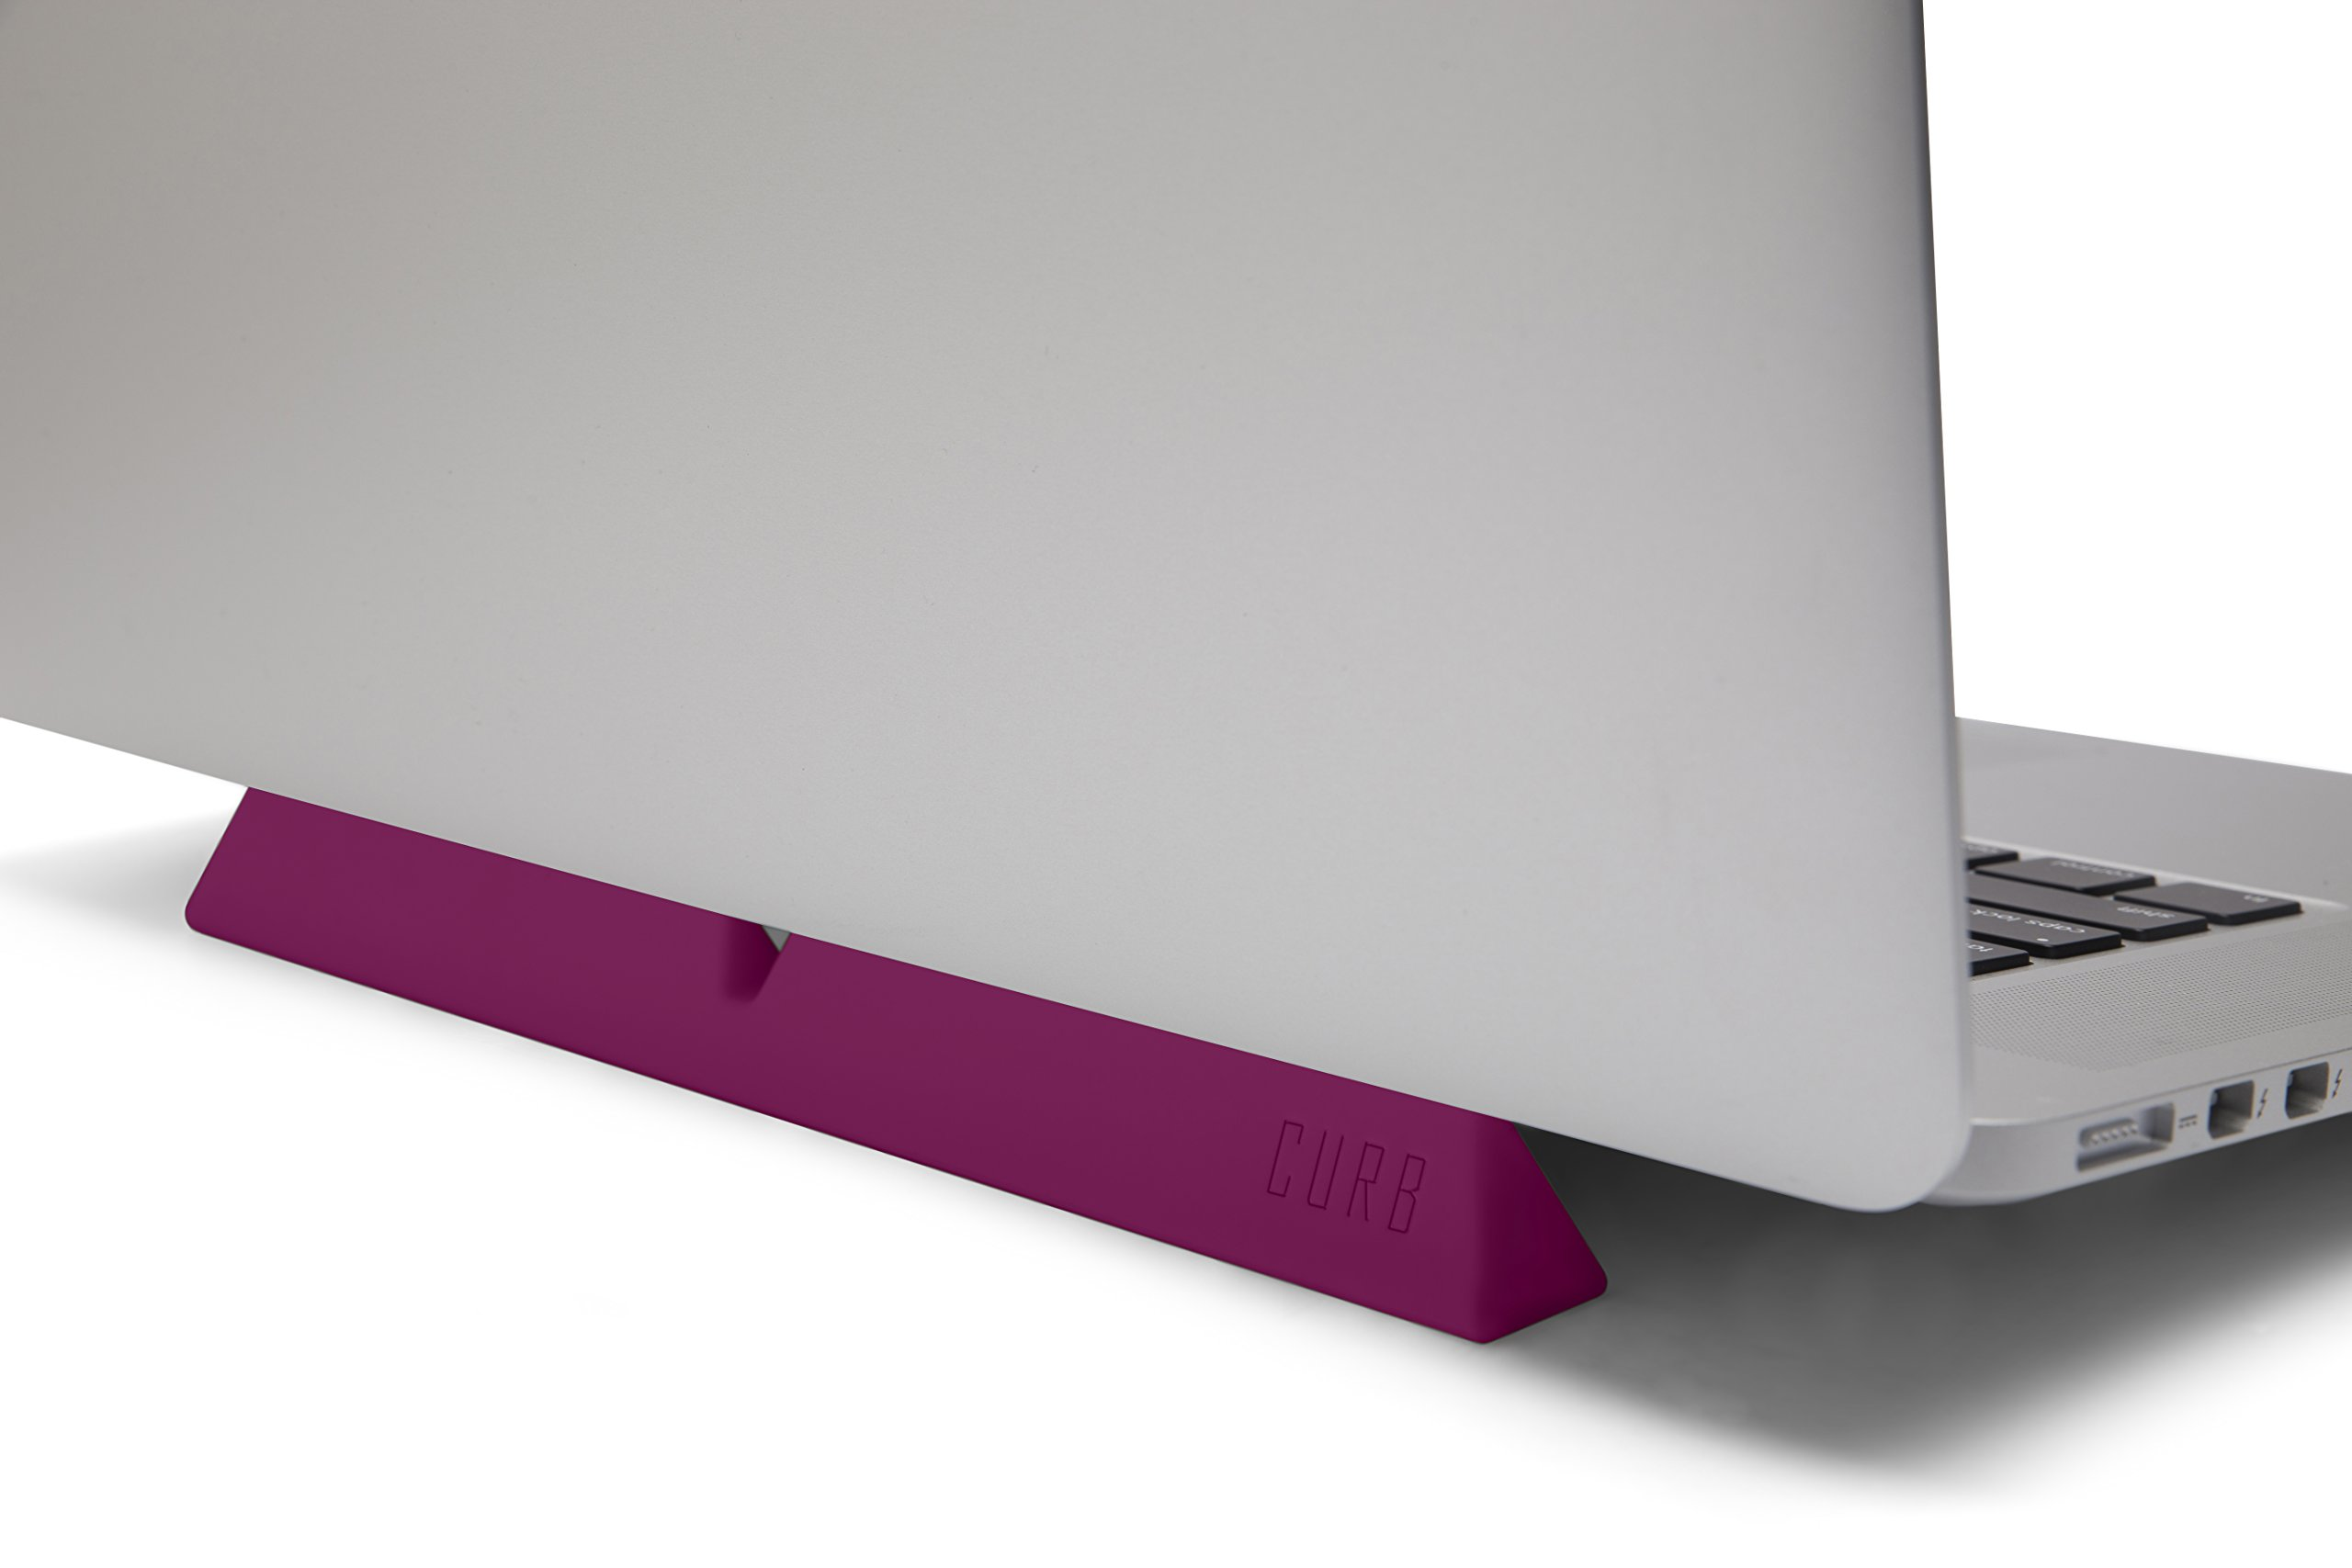 designed by many, CURB Universal & Portable Ergonomic Laptop Stand, Lightweight Dual Viewing Position, Pink by designed by many (Image #4)